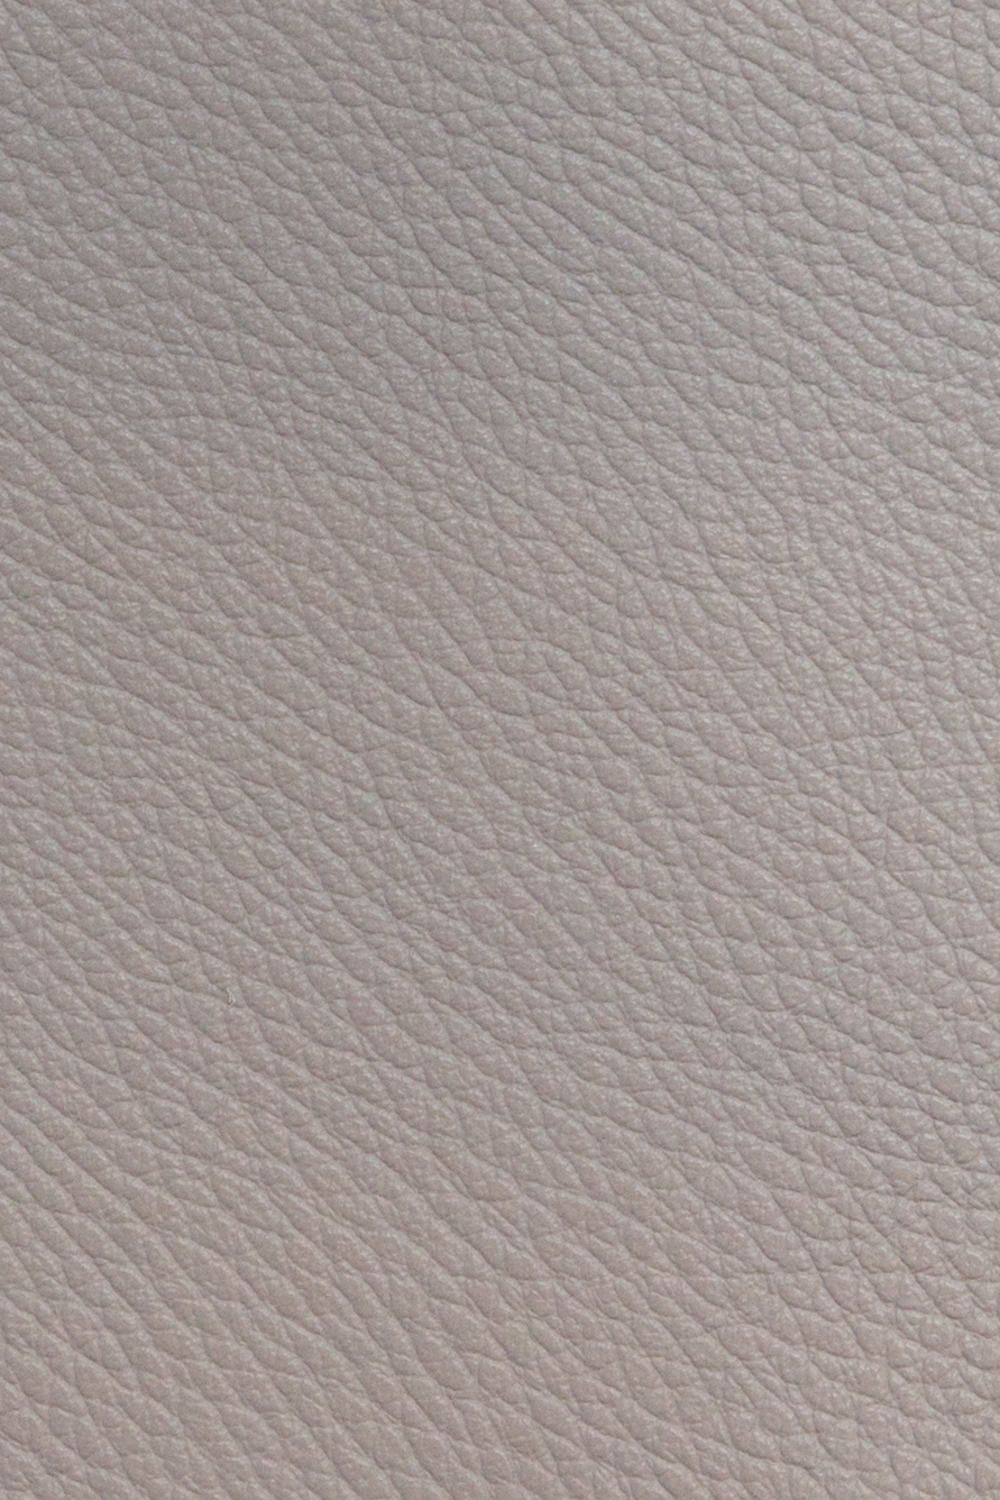 Leather Swatches Canada S Boss Leather Sofas And Furniture In 2020 Leather Texture Sofa Texture Leather Sofa